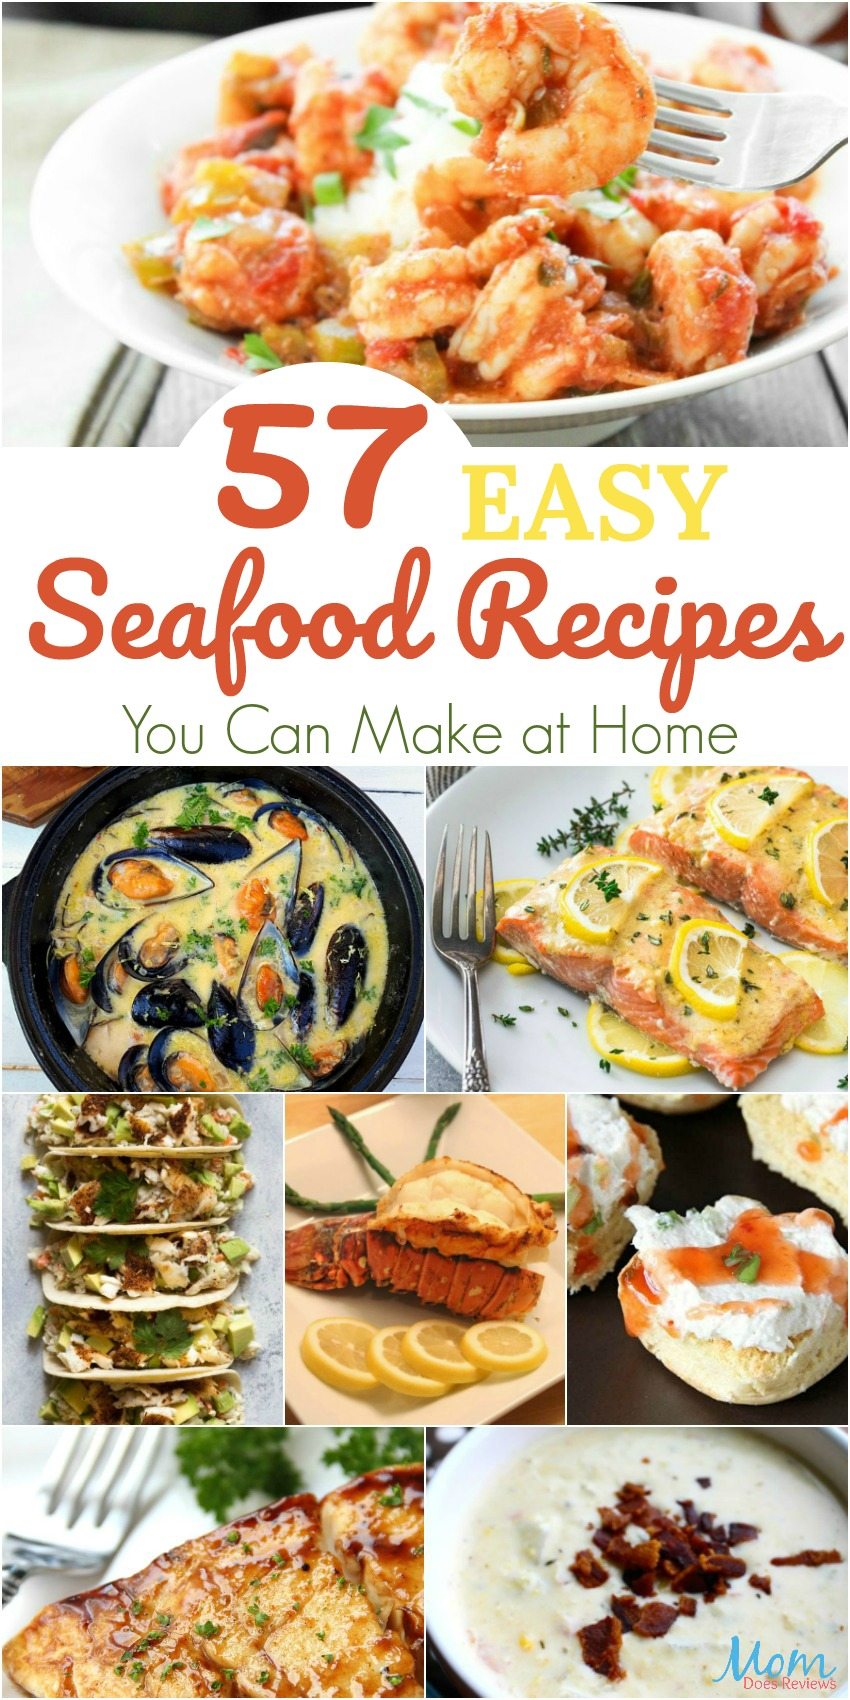 57 Easy Seafood Recipes You Can Make at Home